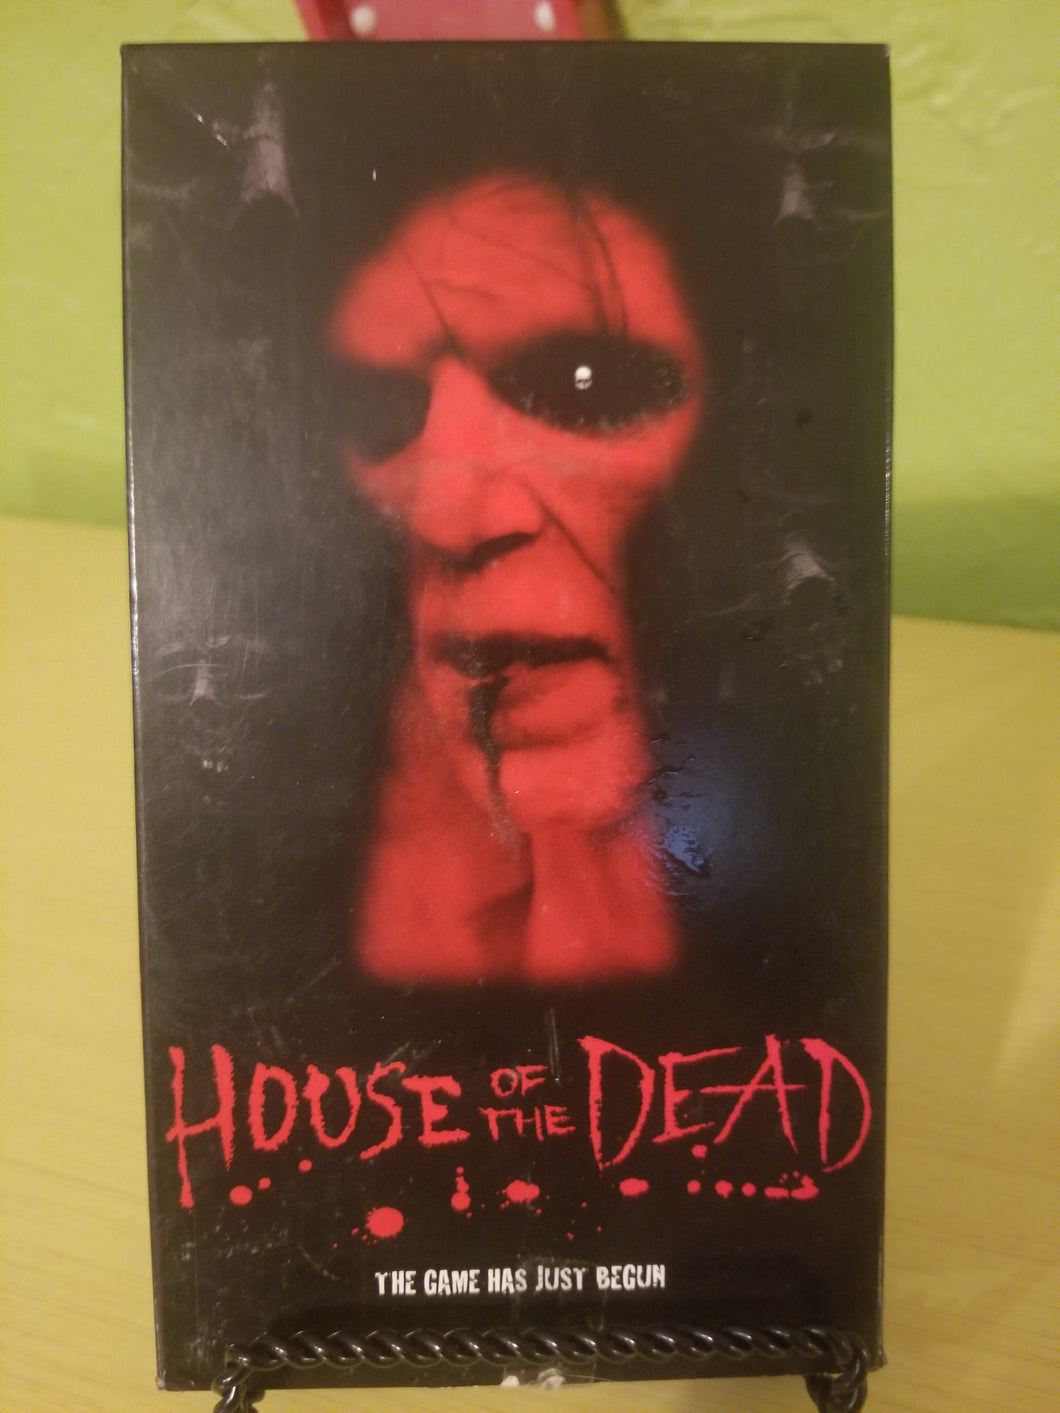 House of the Dead VHS